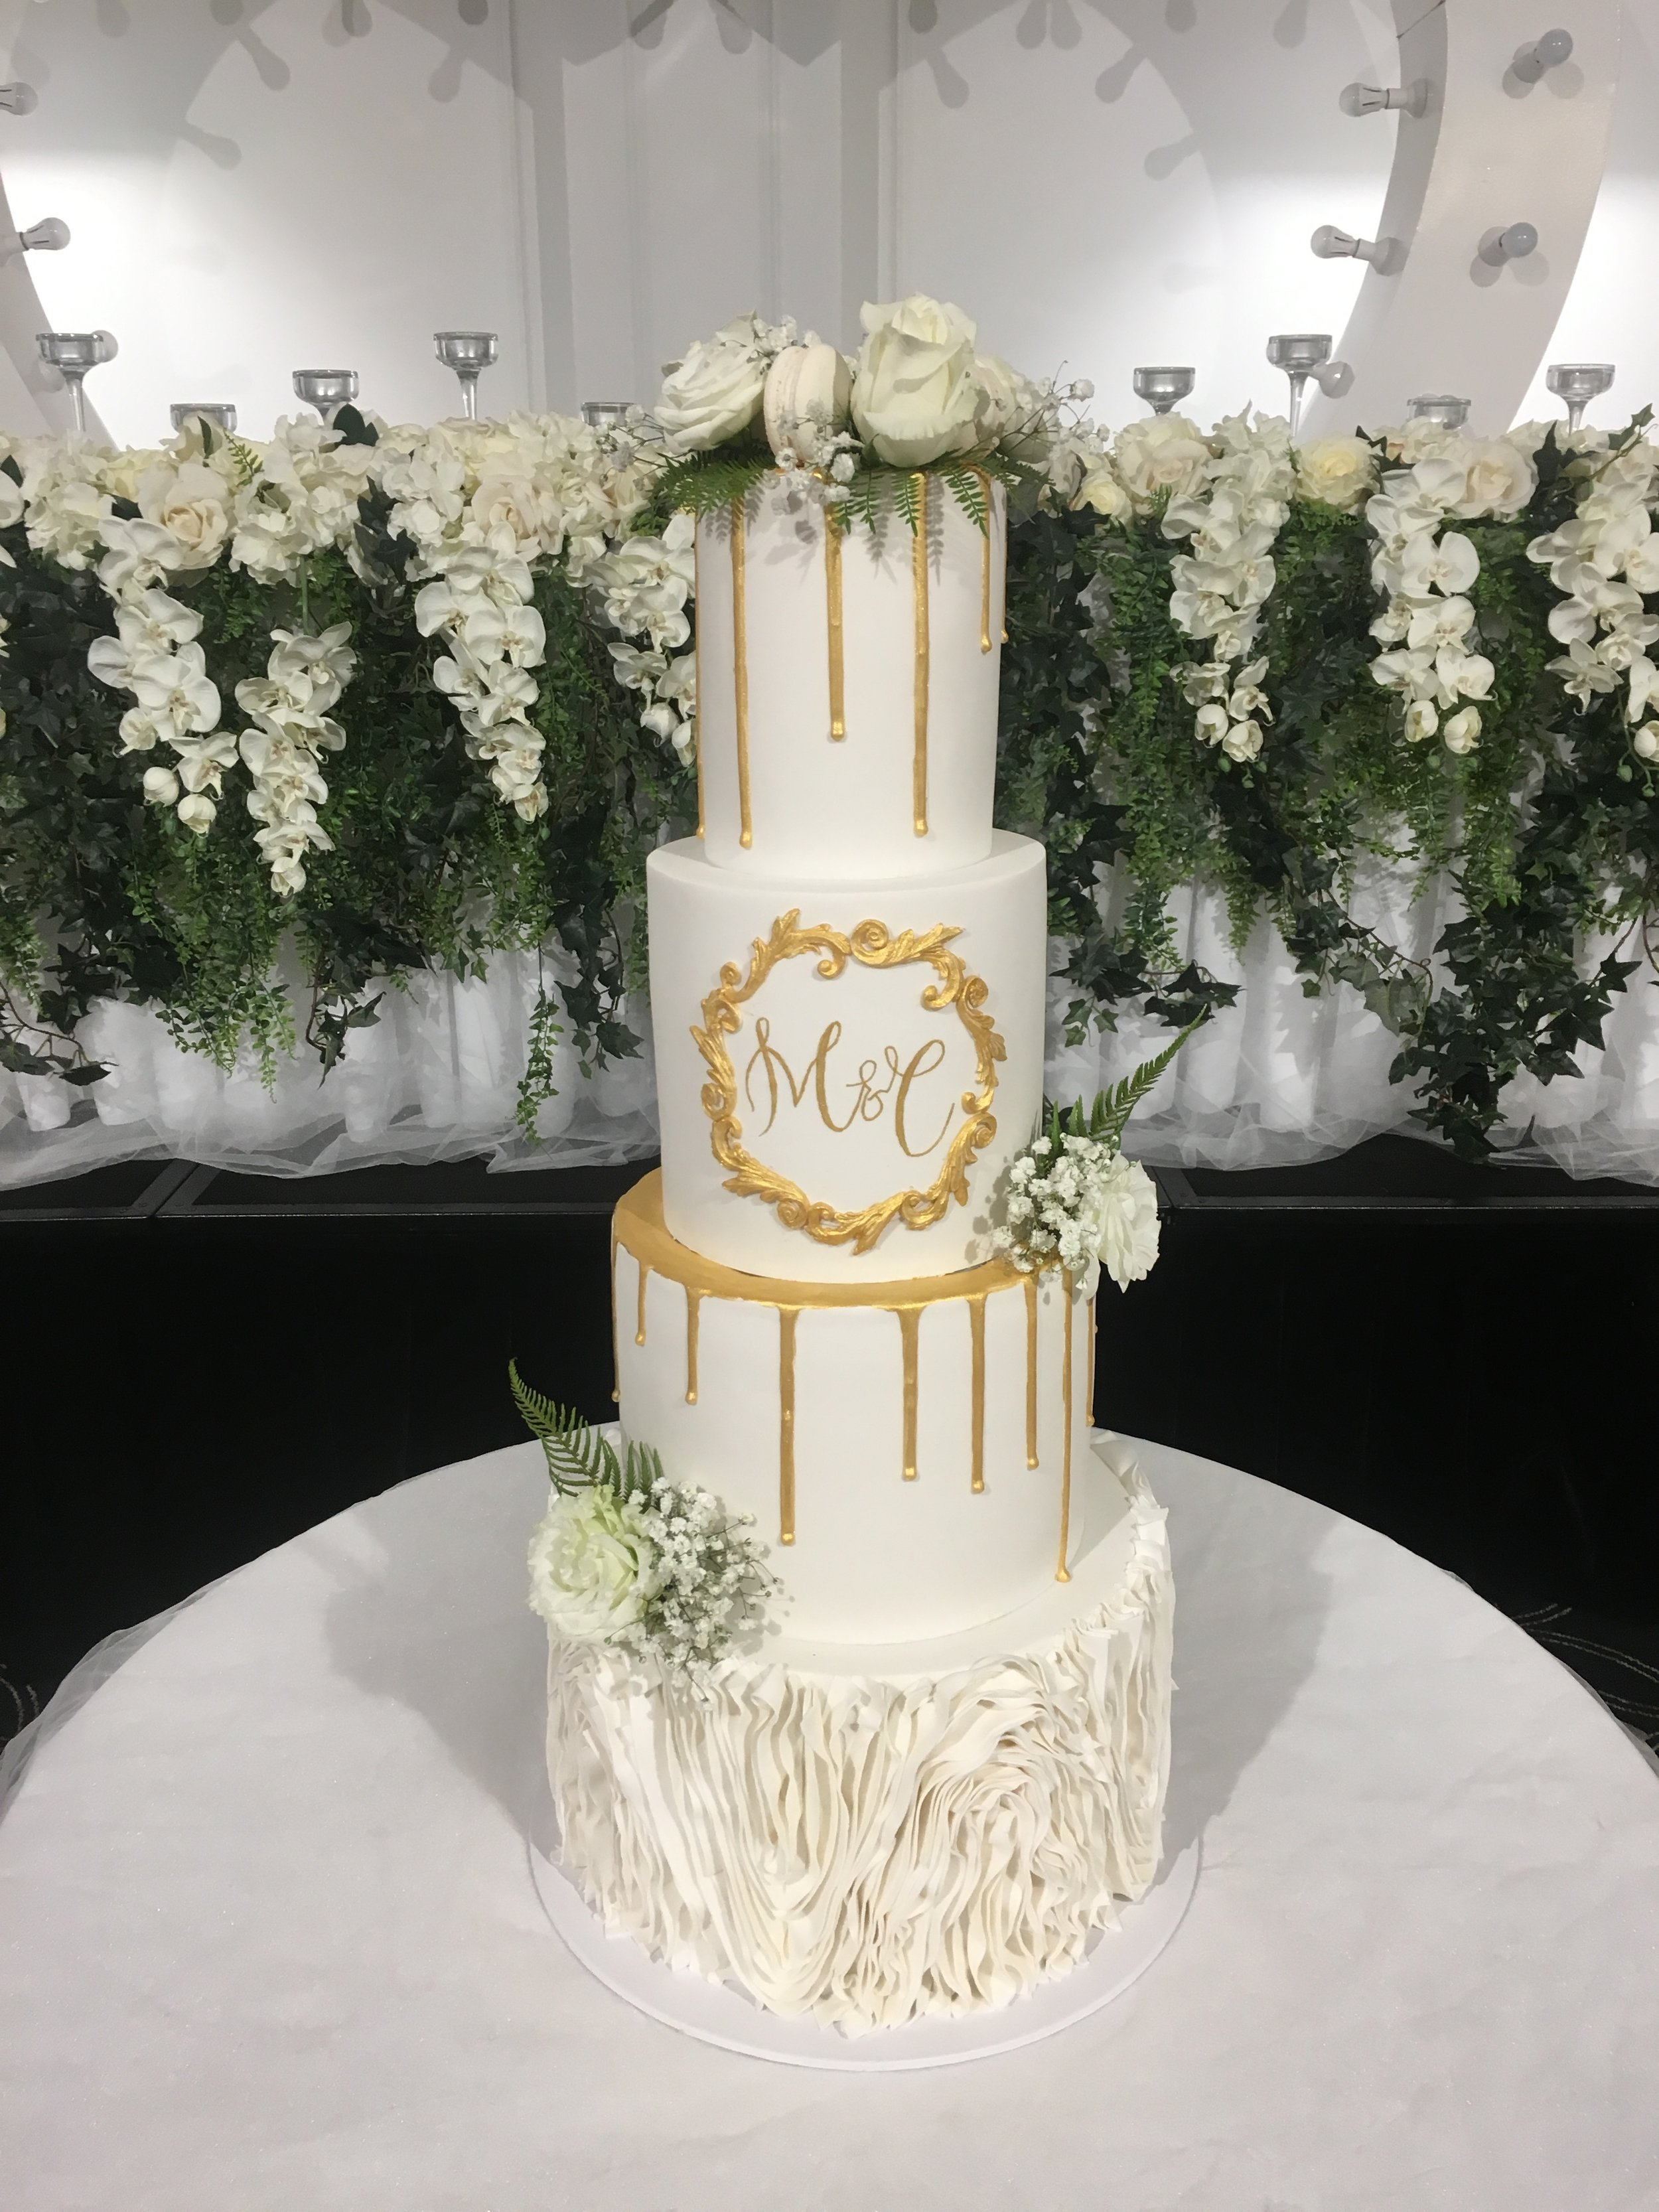 Wedding Cake with Hand-Painted Gold Monogram